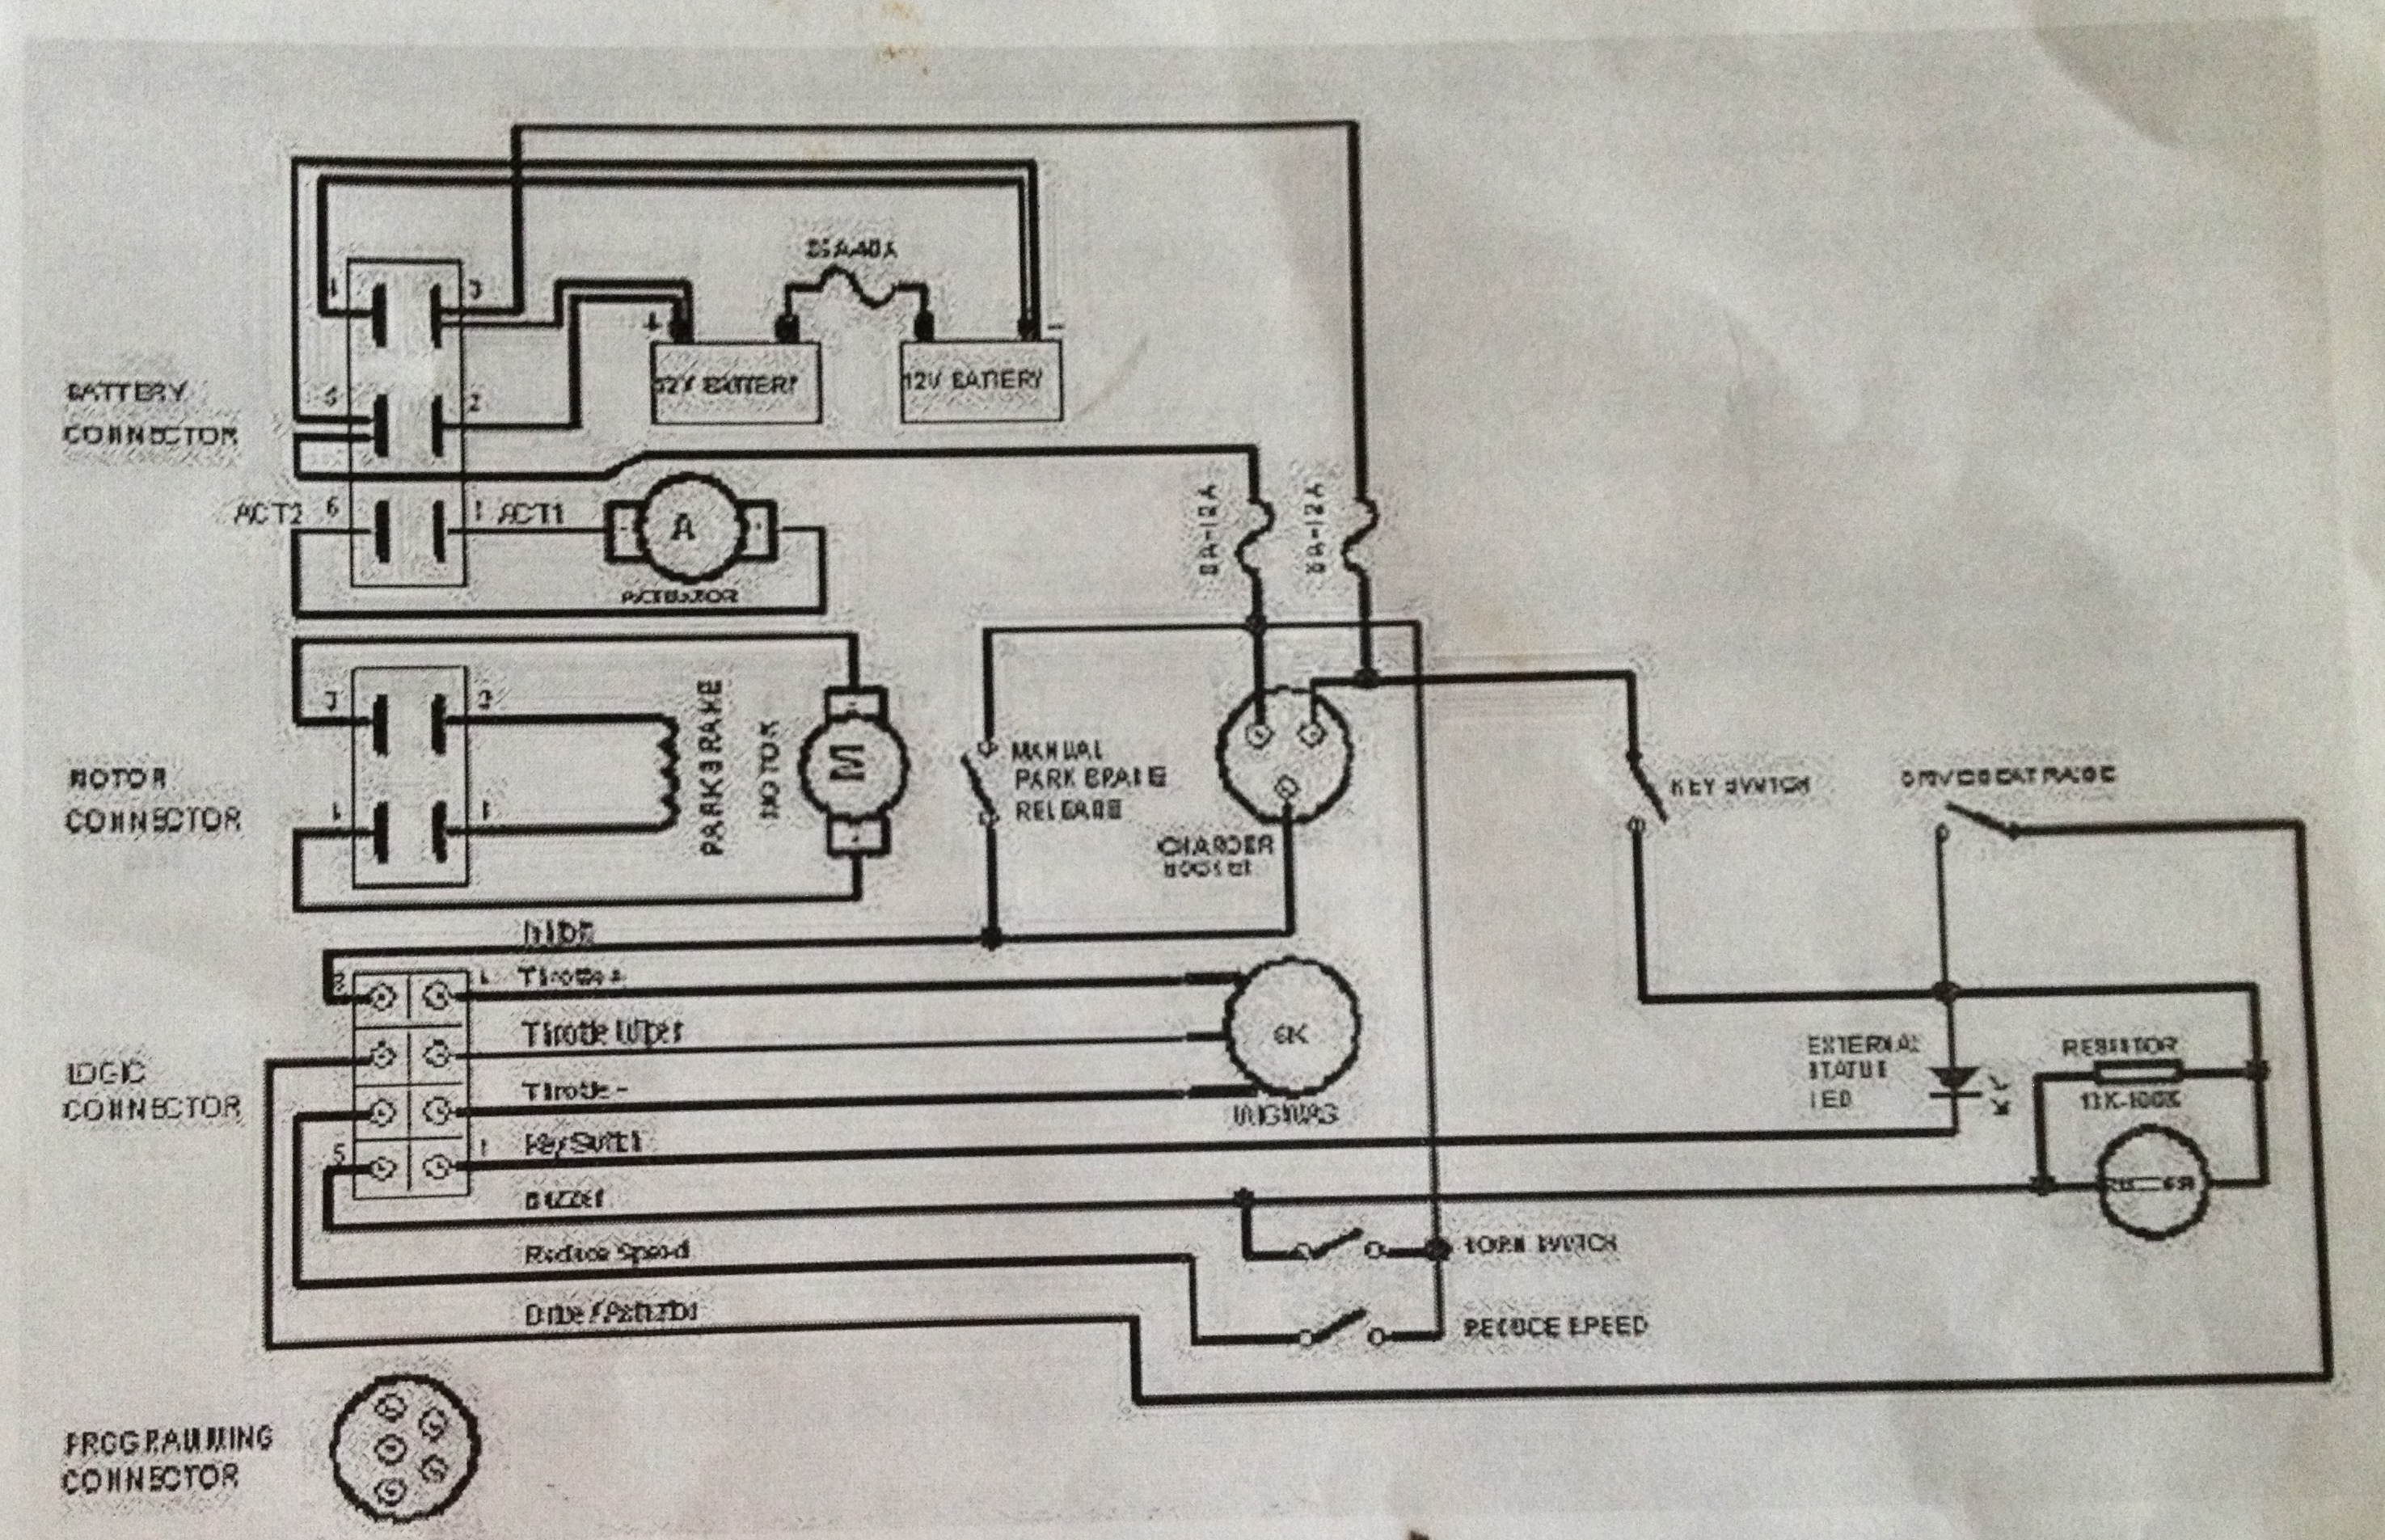 600blockdia scooter doctor v0 0 0 rascal scooter wiring diagram at alyssarenee.co